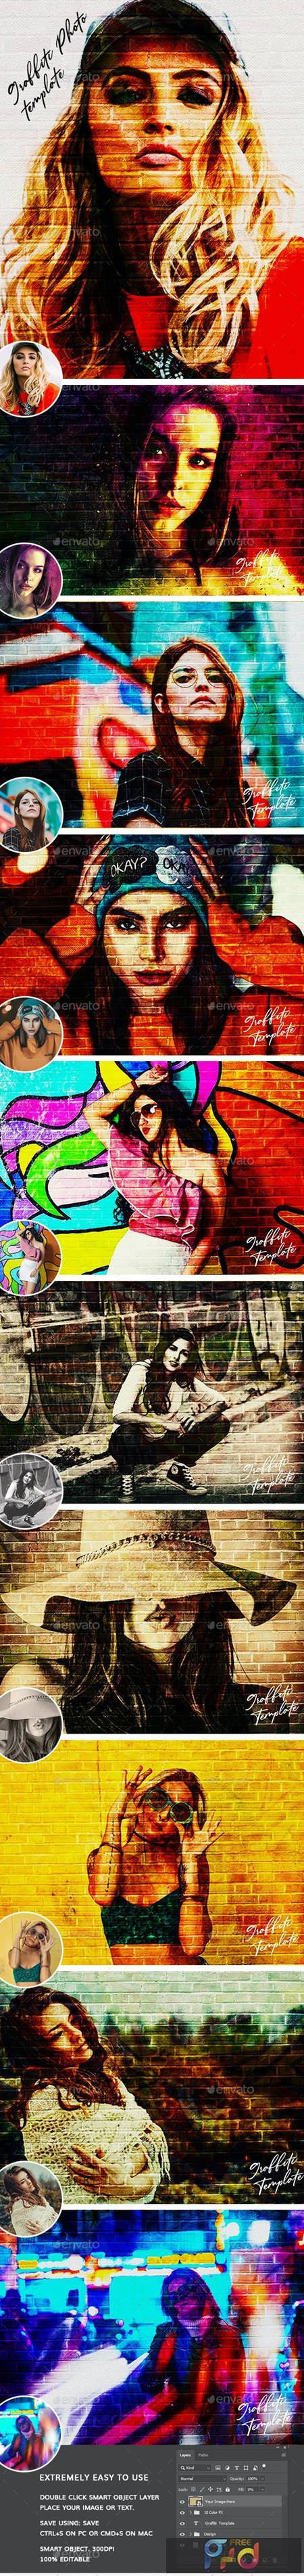 Graffiti Effects Photo Template 29594237 1